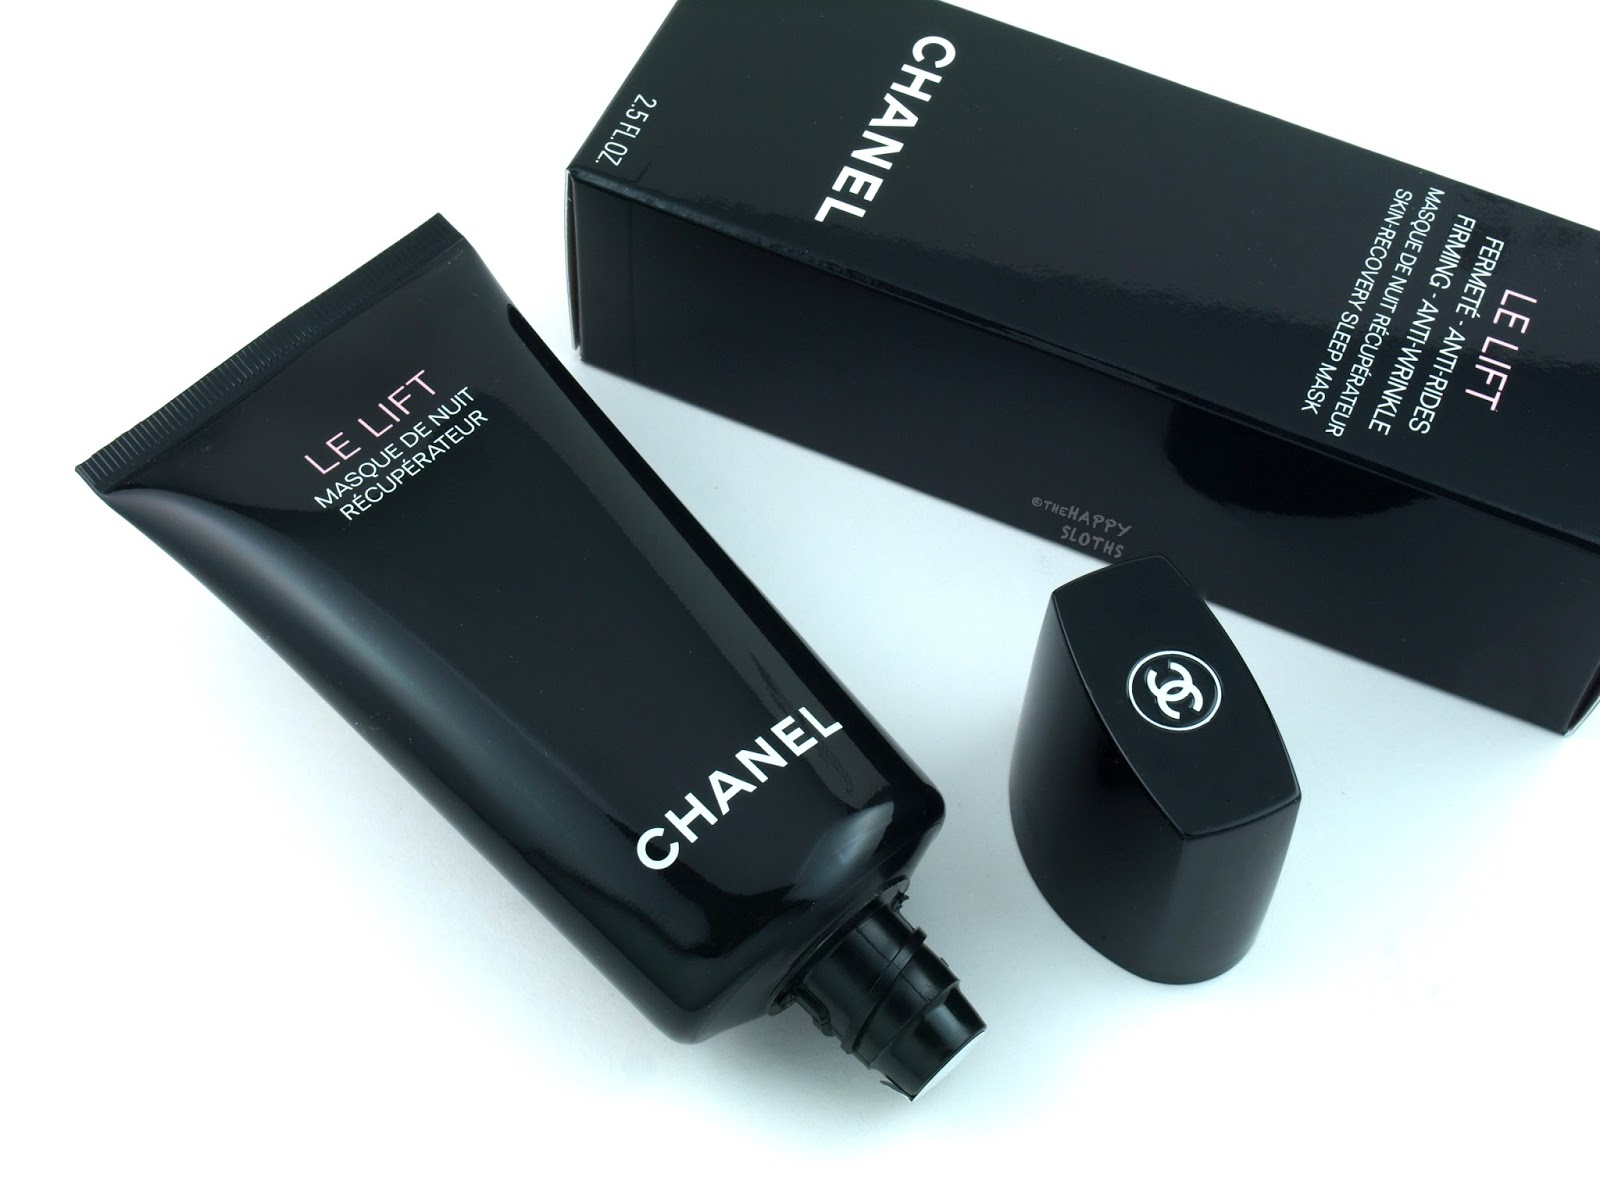 Chanel | Le Lift Skin-Recovery Sleep Mask: Review